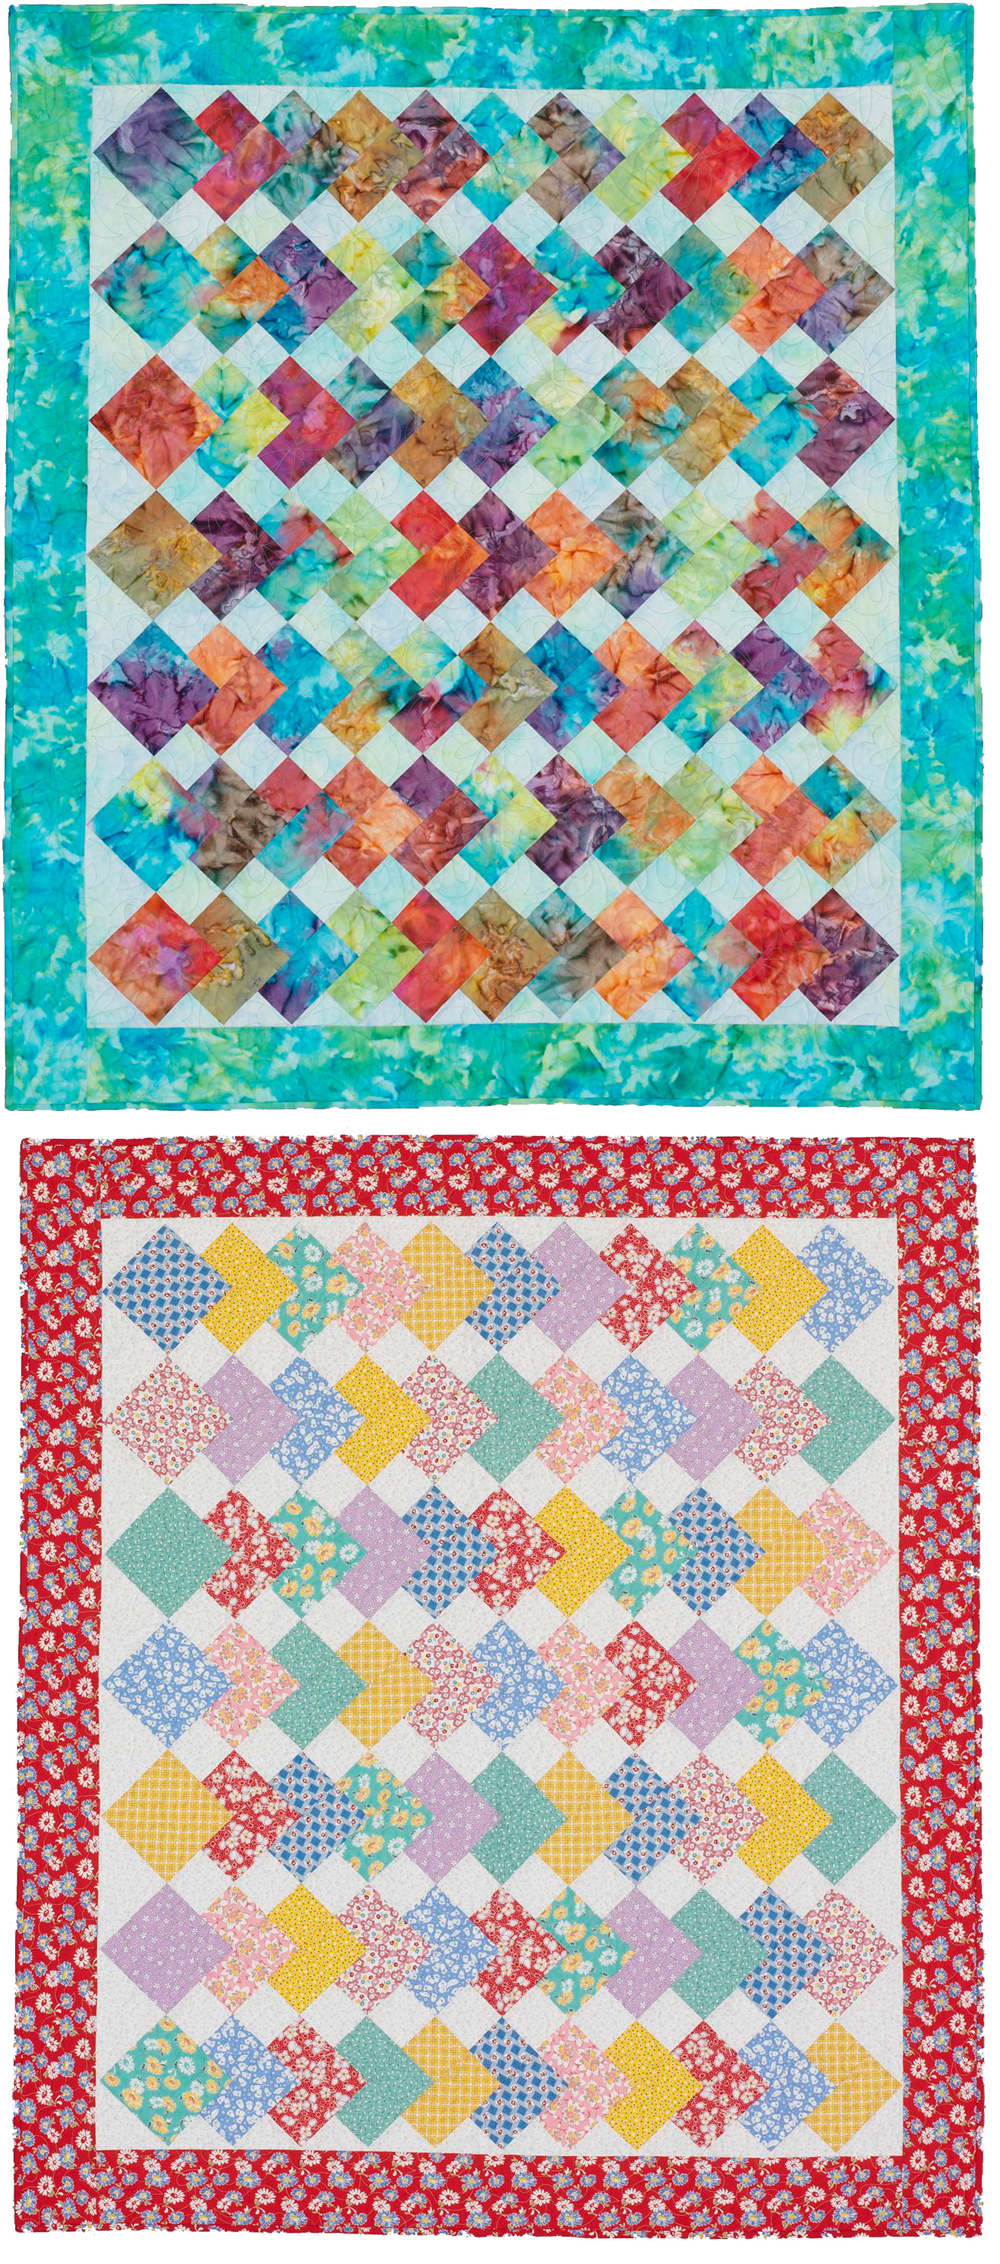 carpenter navy quilts makes quilt and finish dad myguy width decided who the add my patchwork i flimsy borders s of quilting blue this solid daughter top shirts american side at to guy